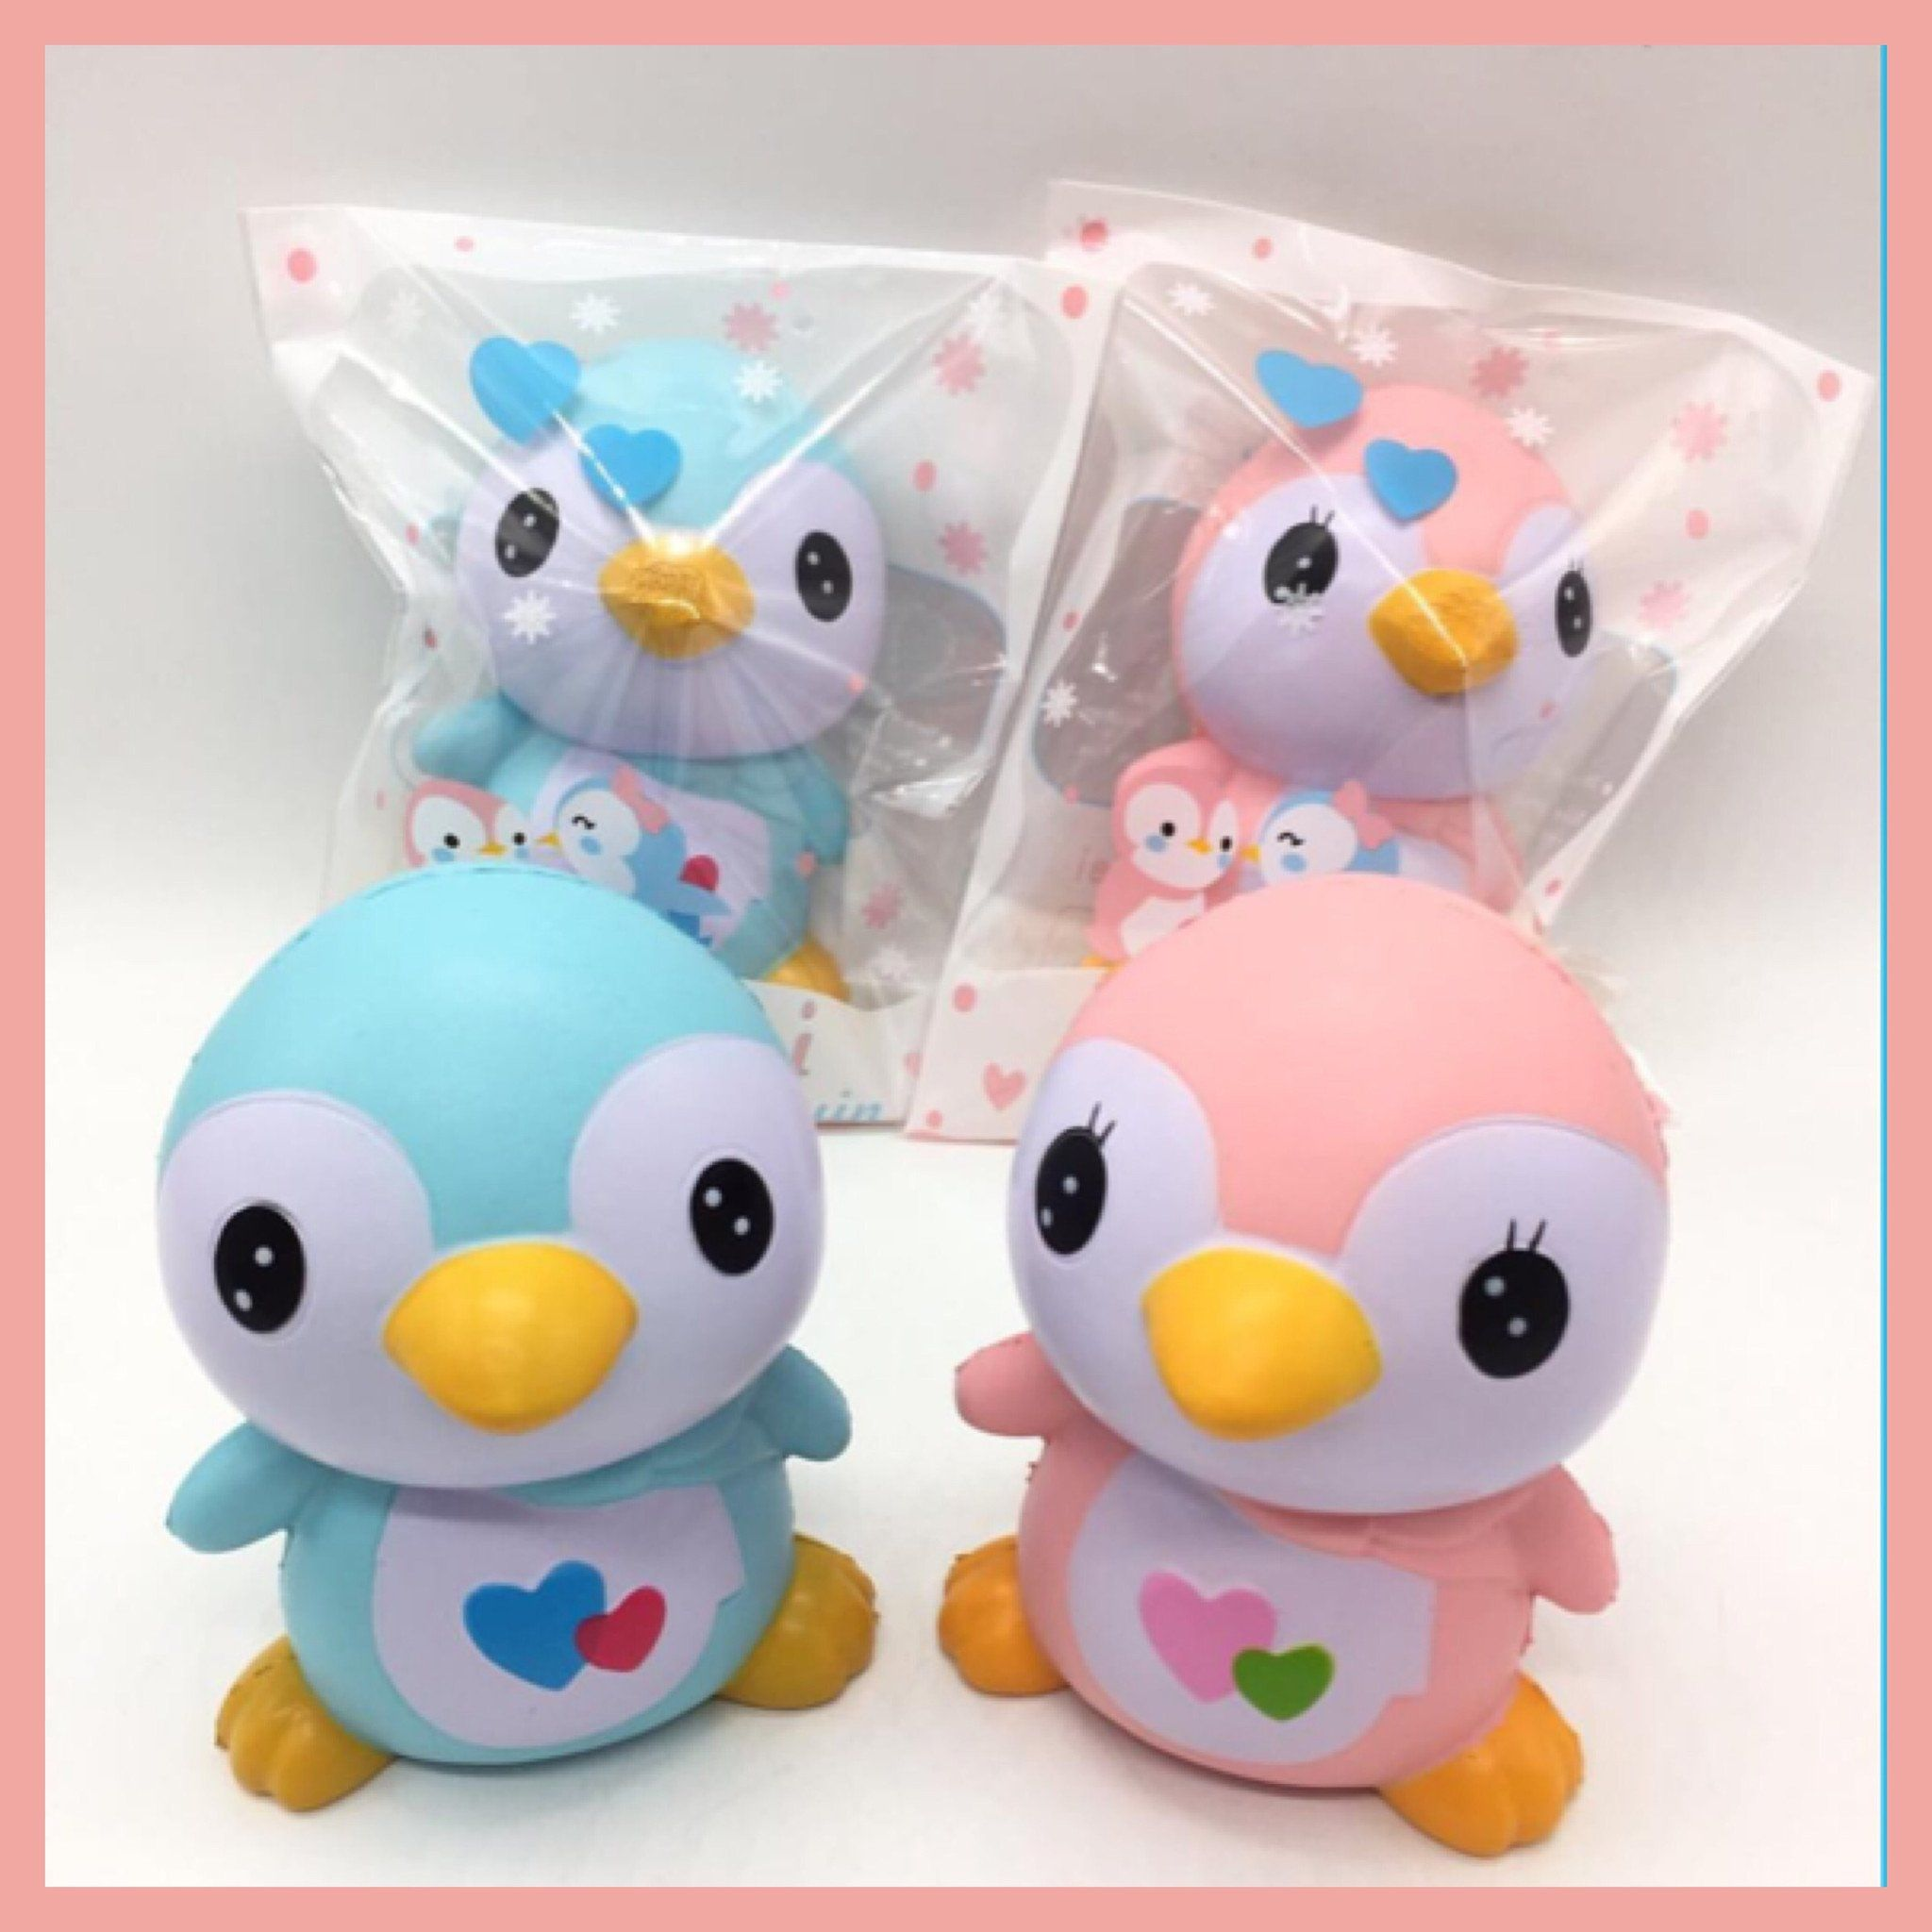 Squishy Toys With Slime In It : Penguin Squishies Penguins, Squishies and Slime